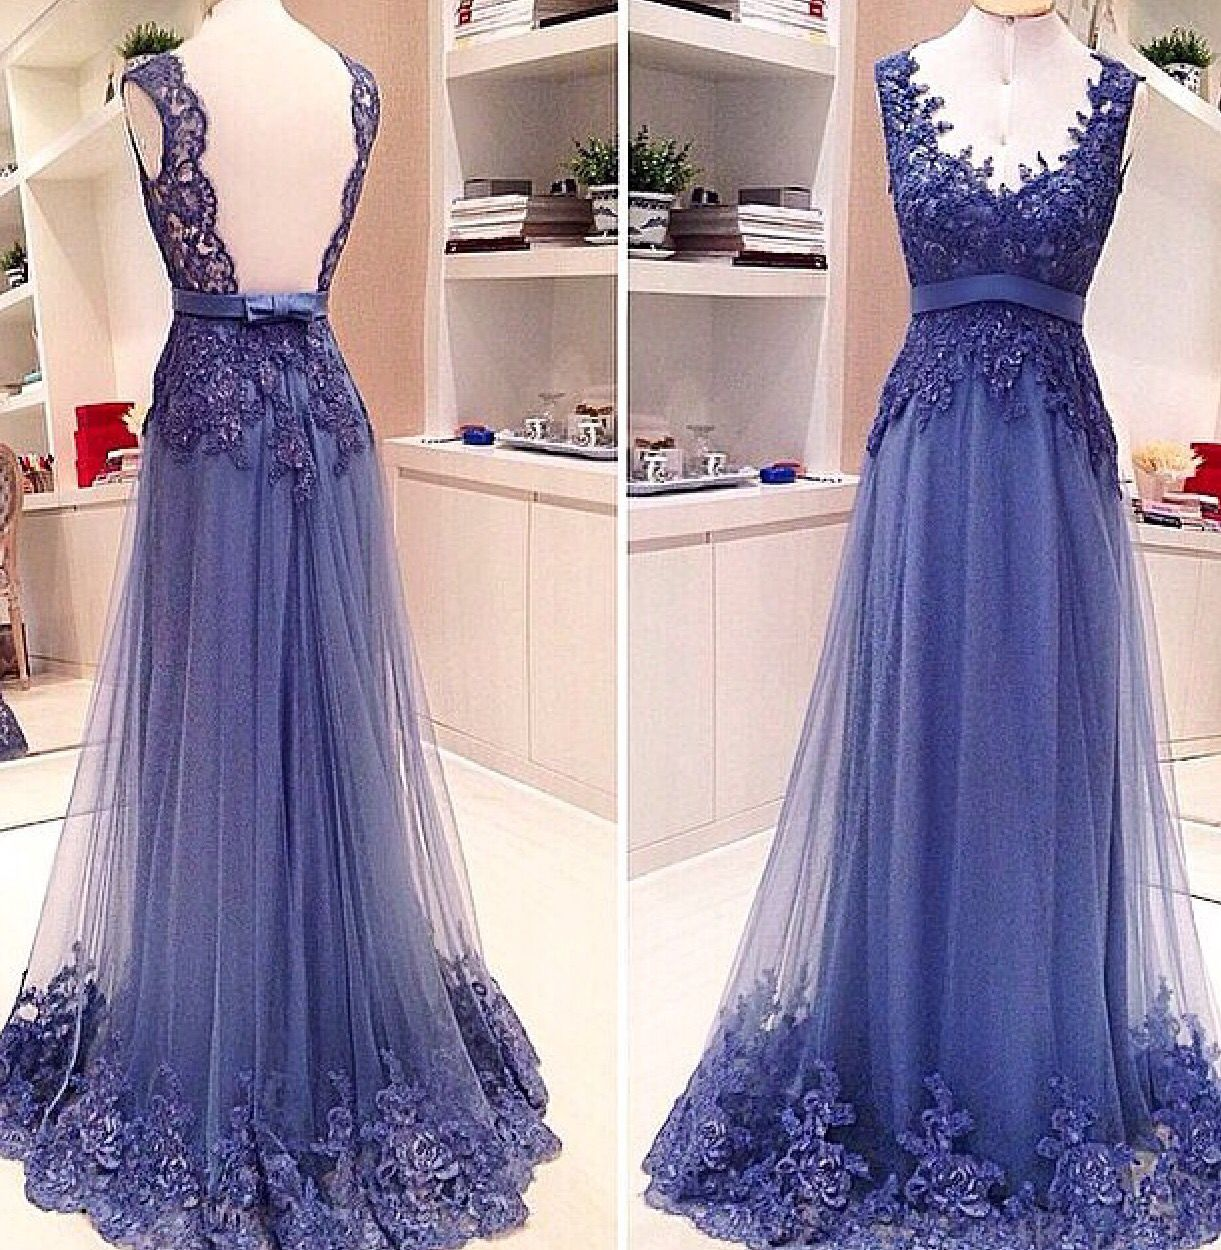 Tule bordado estilo pinterest prom banquet dresses and gala